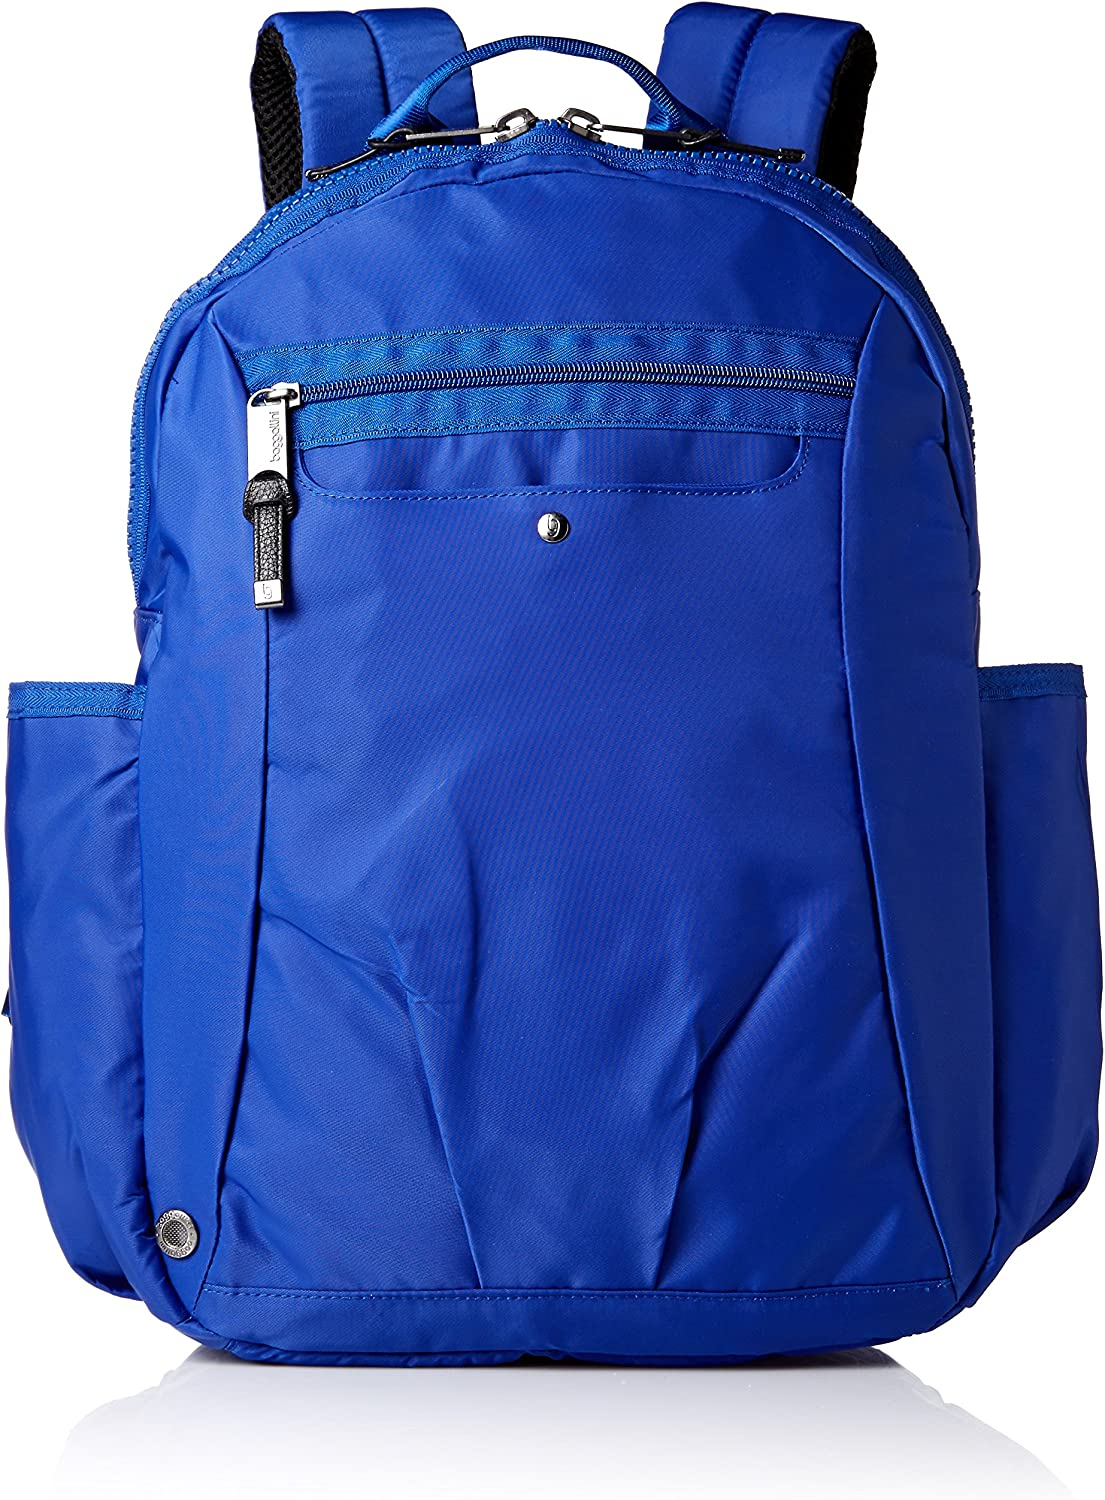 Baggallini Women's Gadabout Laptop Backpack